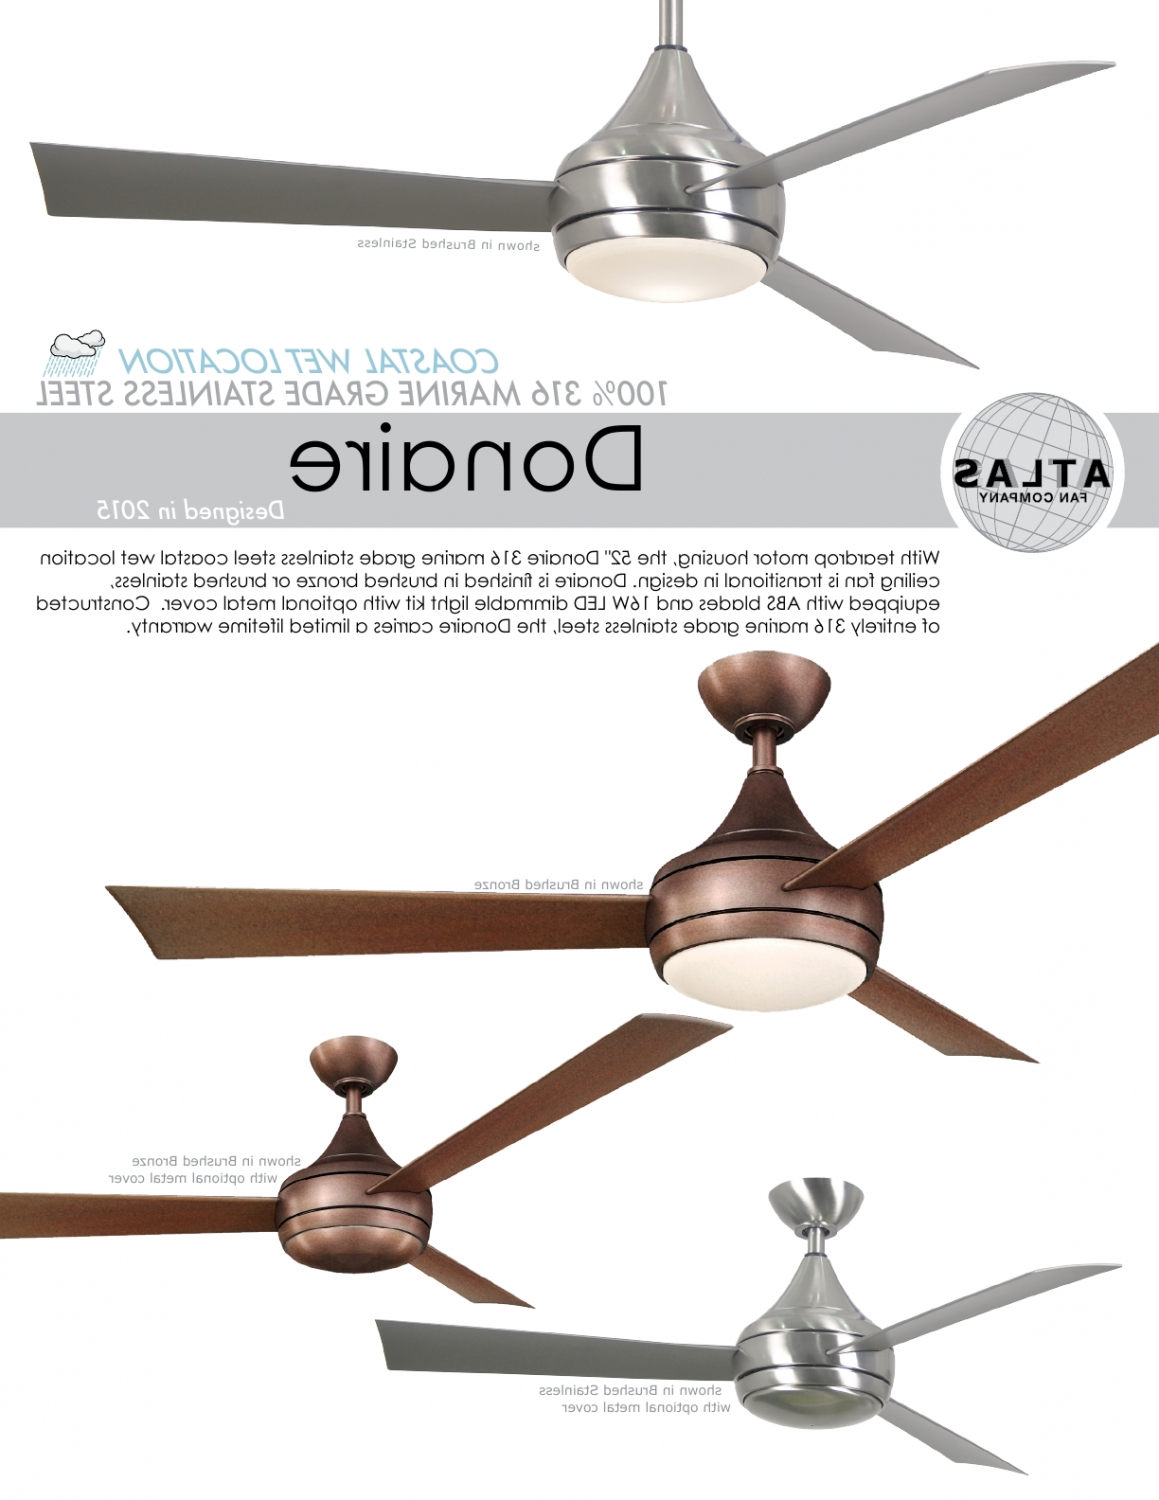 Outdoor Ceiling Fans For Wet Locations With Regard To Newest Donaire Ceiling Fan For Balcony Terrace Verandah Outdoor Spaces (View 13 of 20)